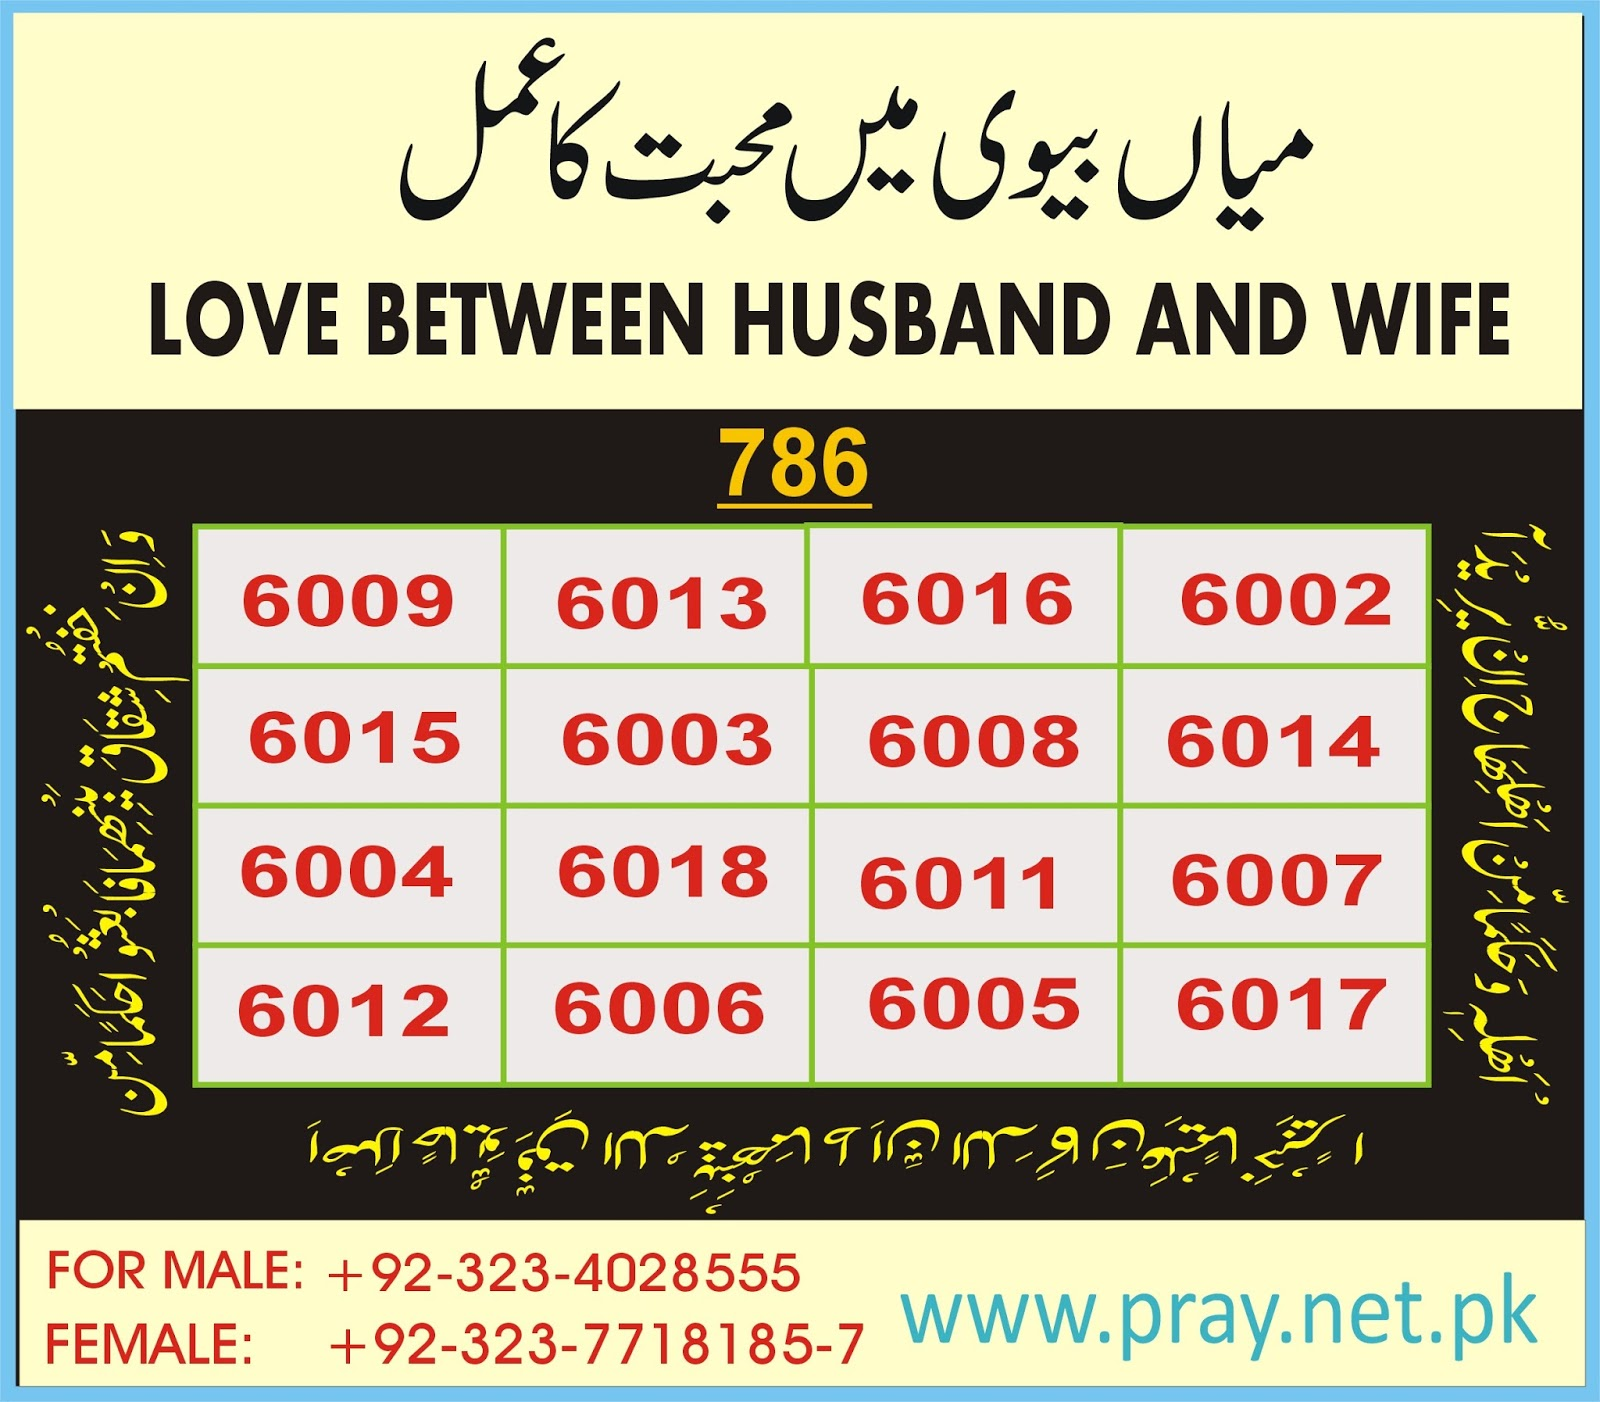 Pray For Husband And Wife Love | Pray For All,Pray To Allah